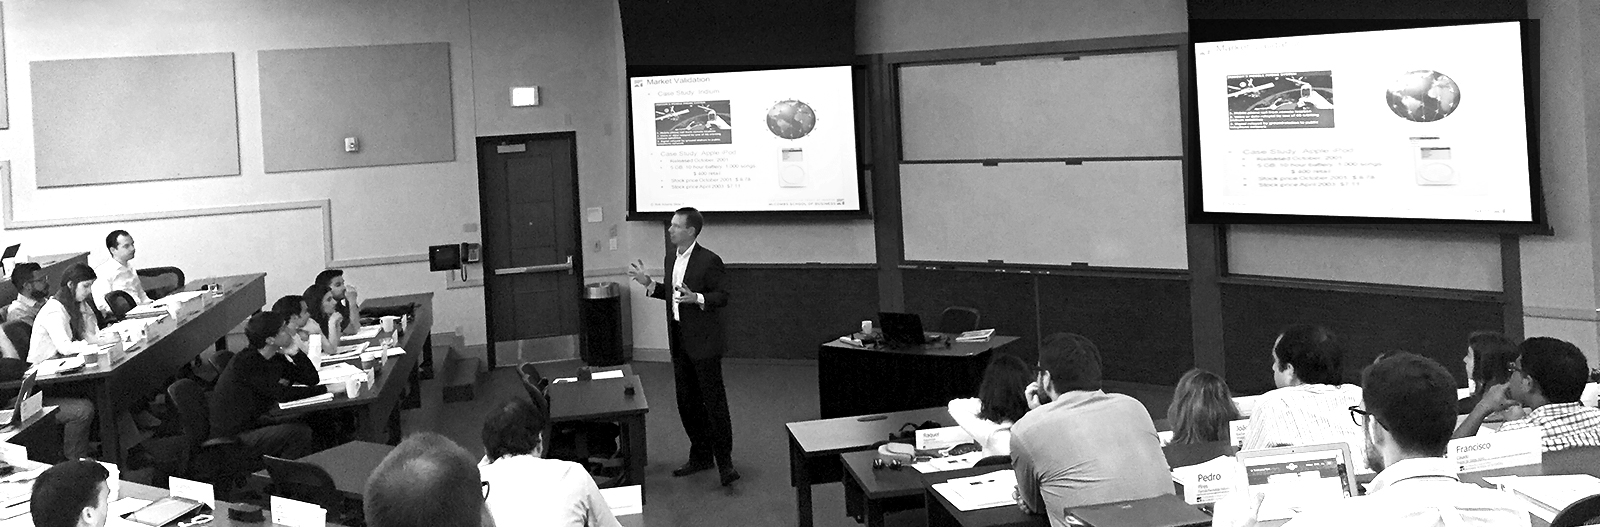 Dr. Rob Adams Market Valuation Conference at the University of Texas at Austin